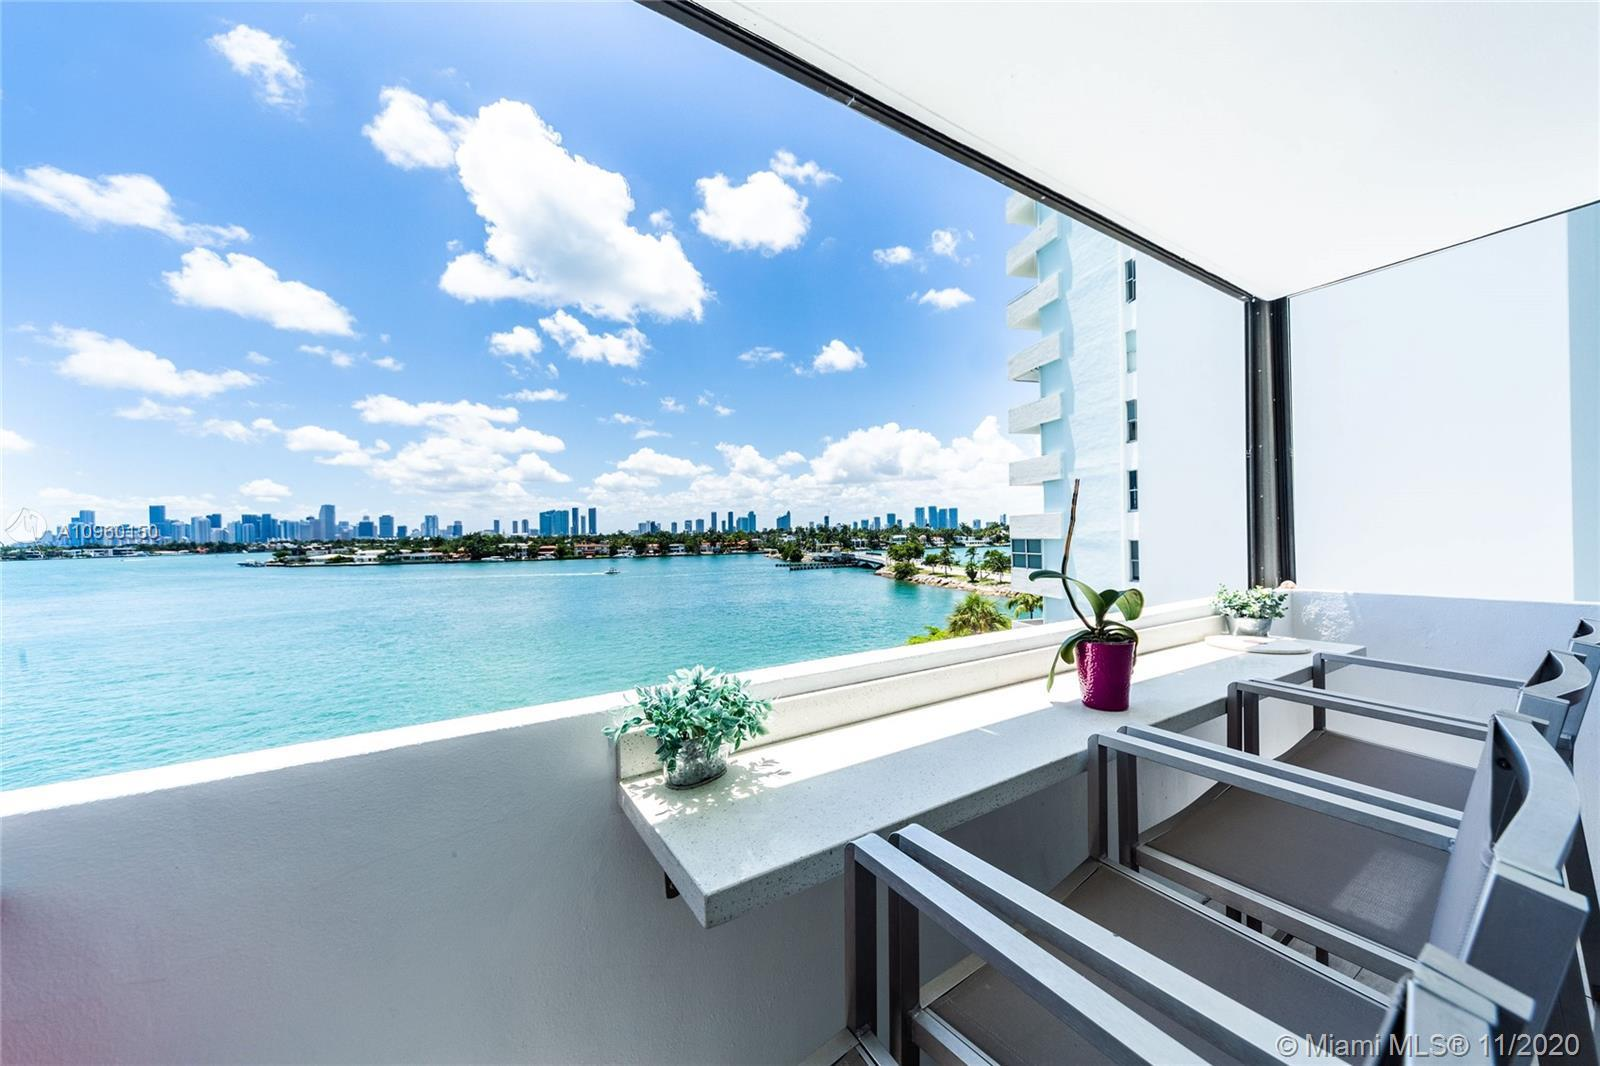 Fully updated corner unit at the exclusive Island Terrace Condo. Stunning views of Biscayne Bay and